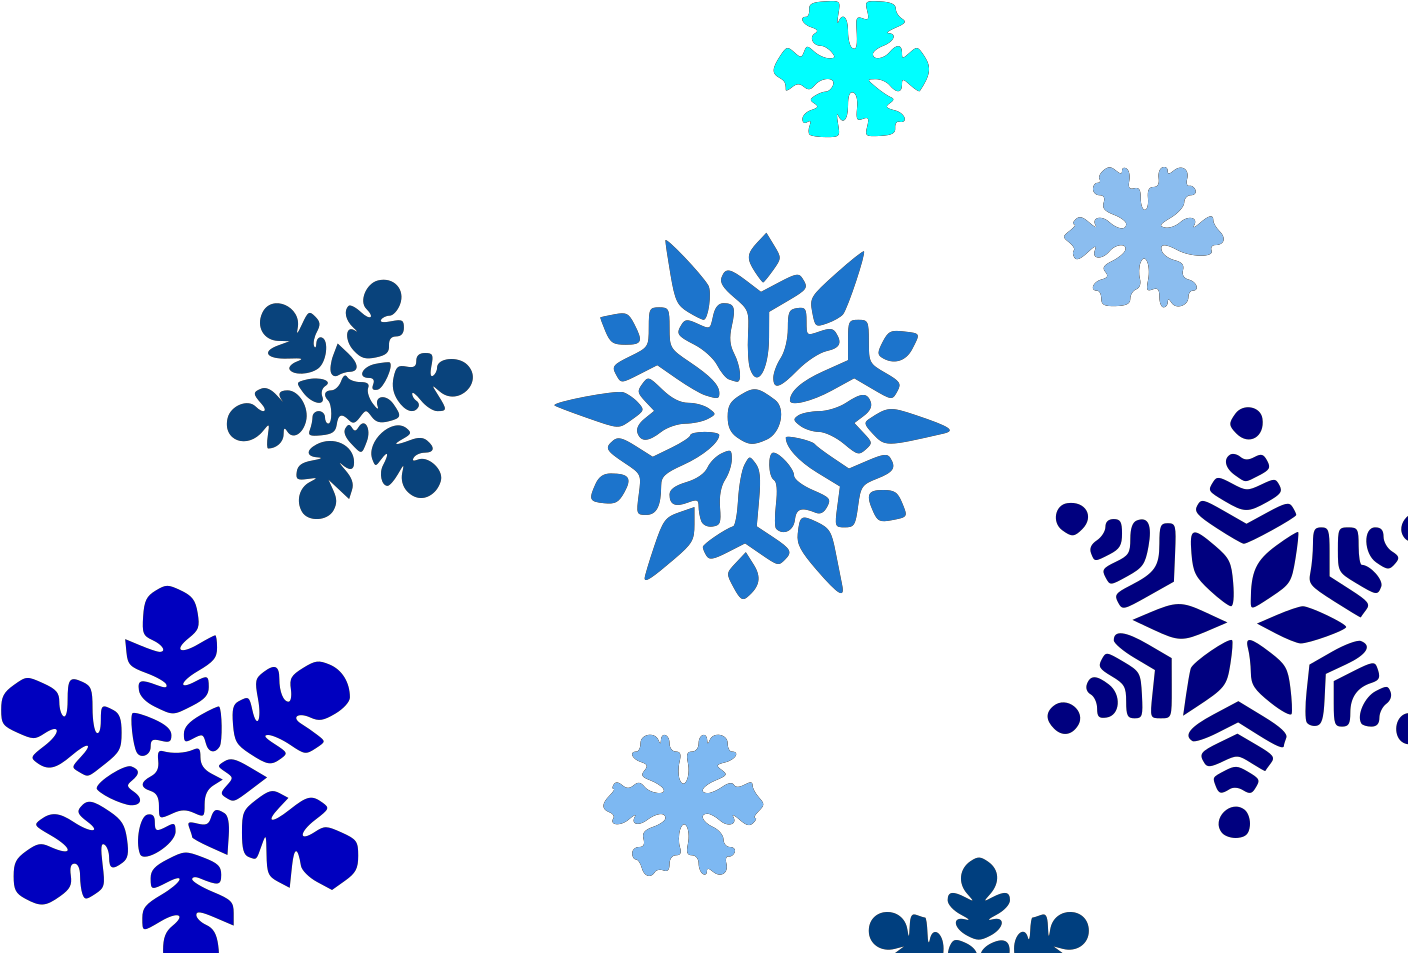 Falling Snowflakes Clipart Black And White Png Download Full Size Clipart 5194340 Pinclipart